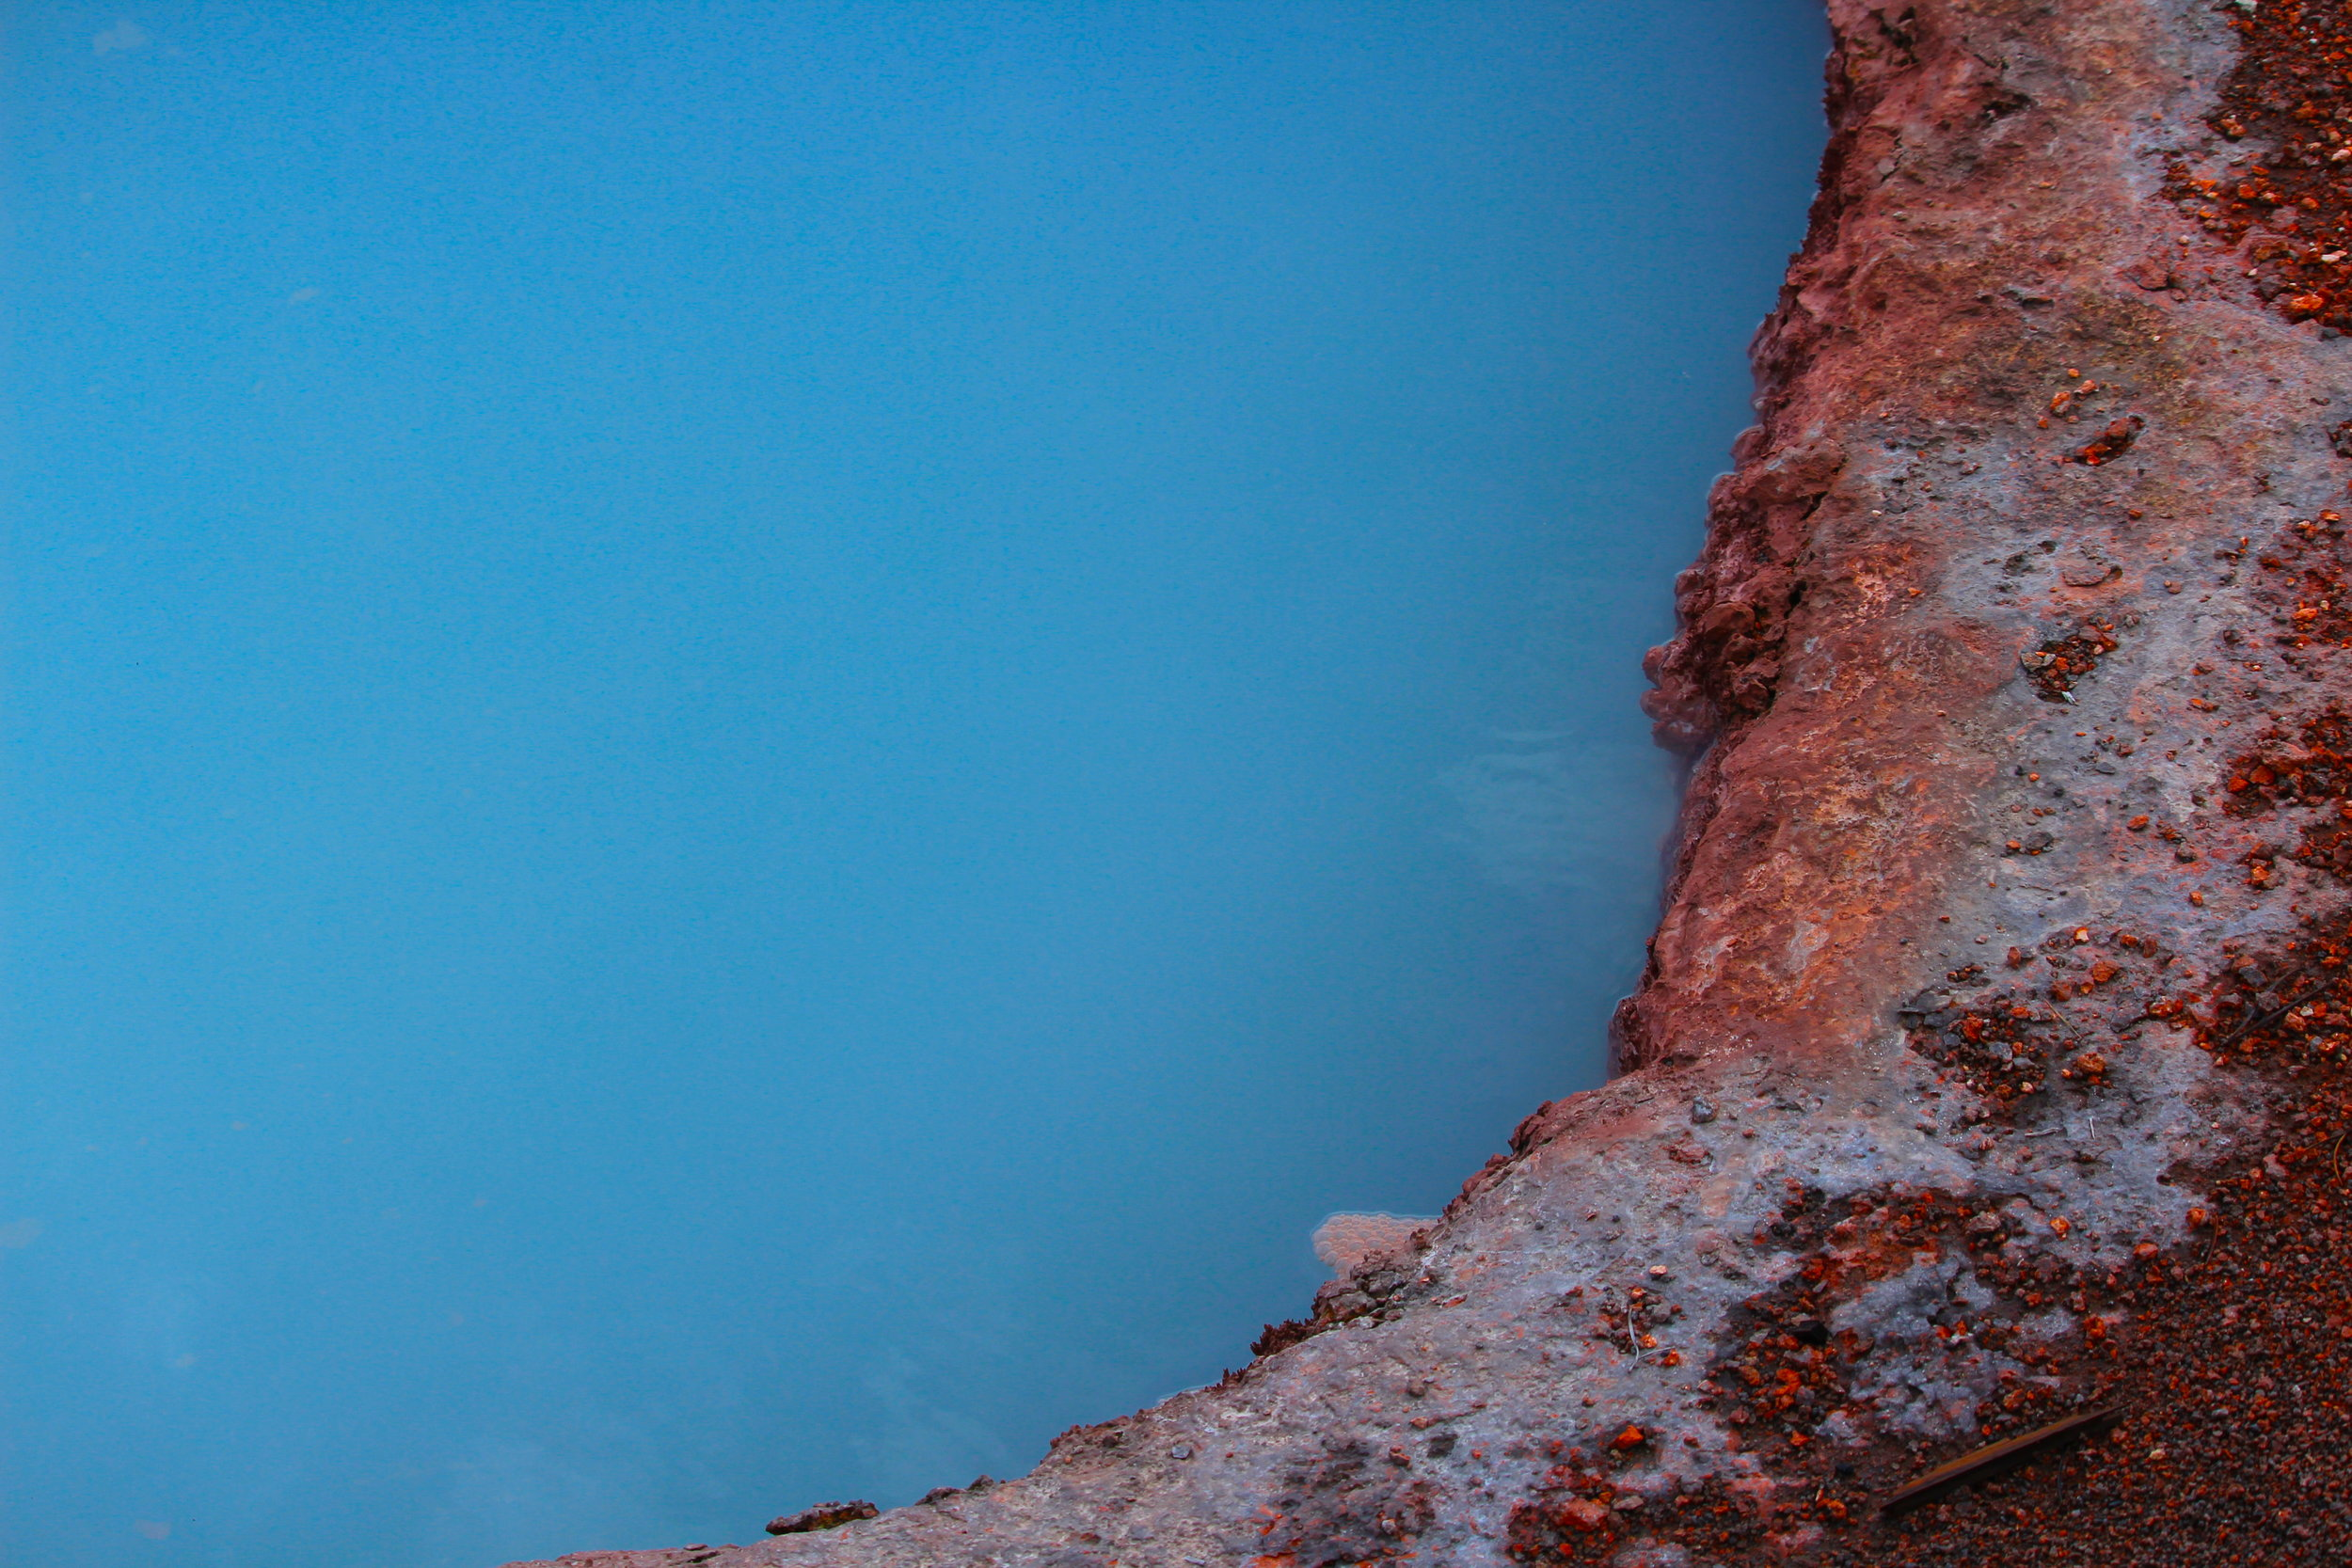 Geothermal Study No. 1, Part 1